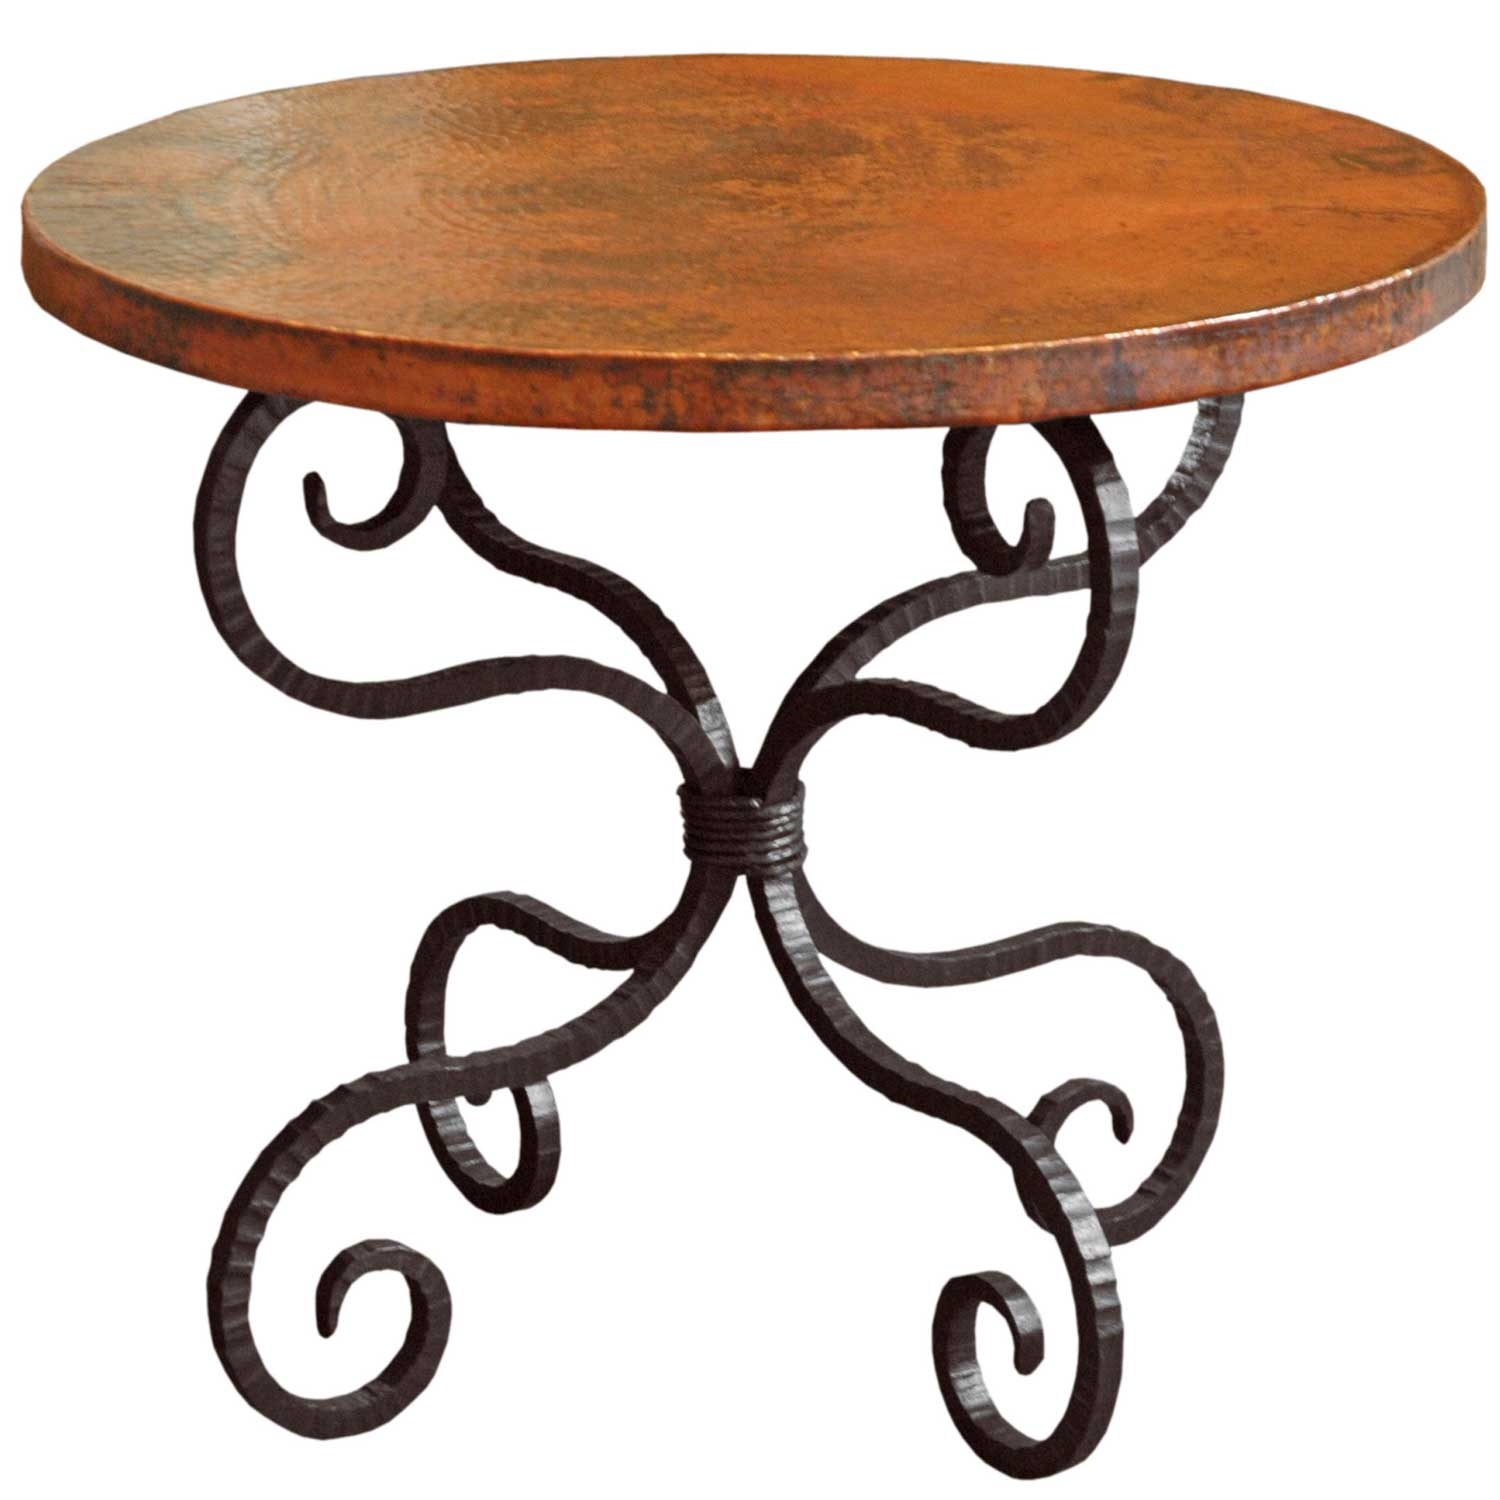 alexander wrought iron end table with round top timeless twi patio accent larger oval marble oak and glass nest tables ethan allen counter stools outdoor cooking metal dining